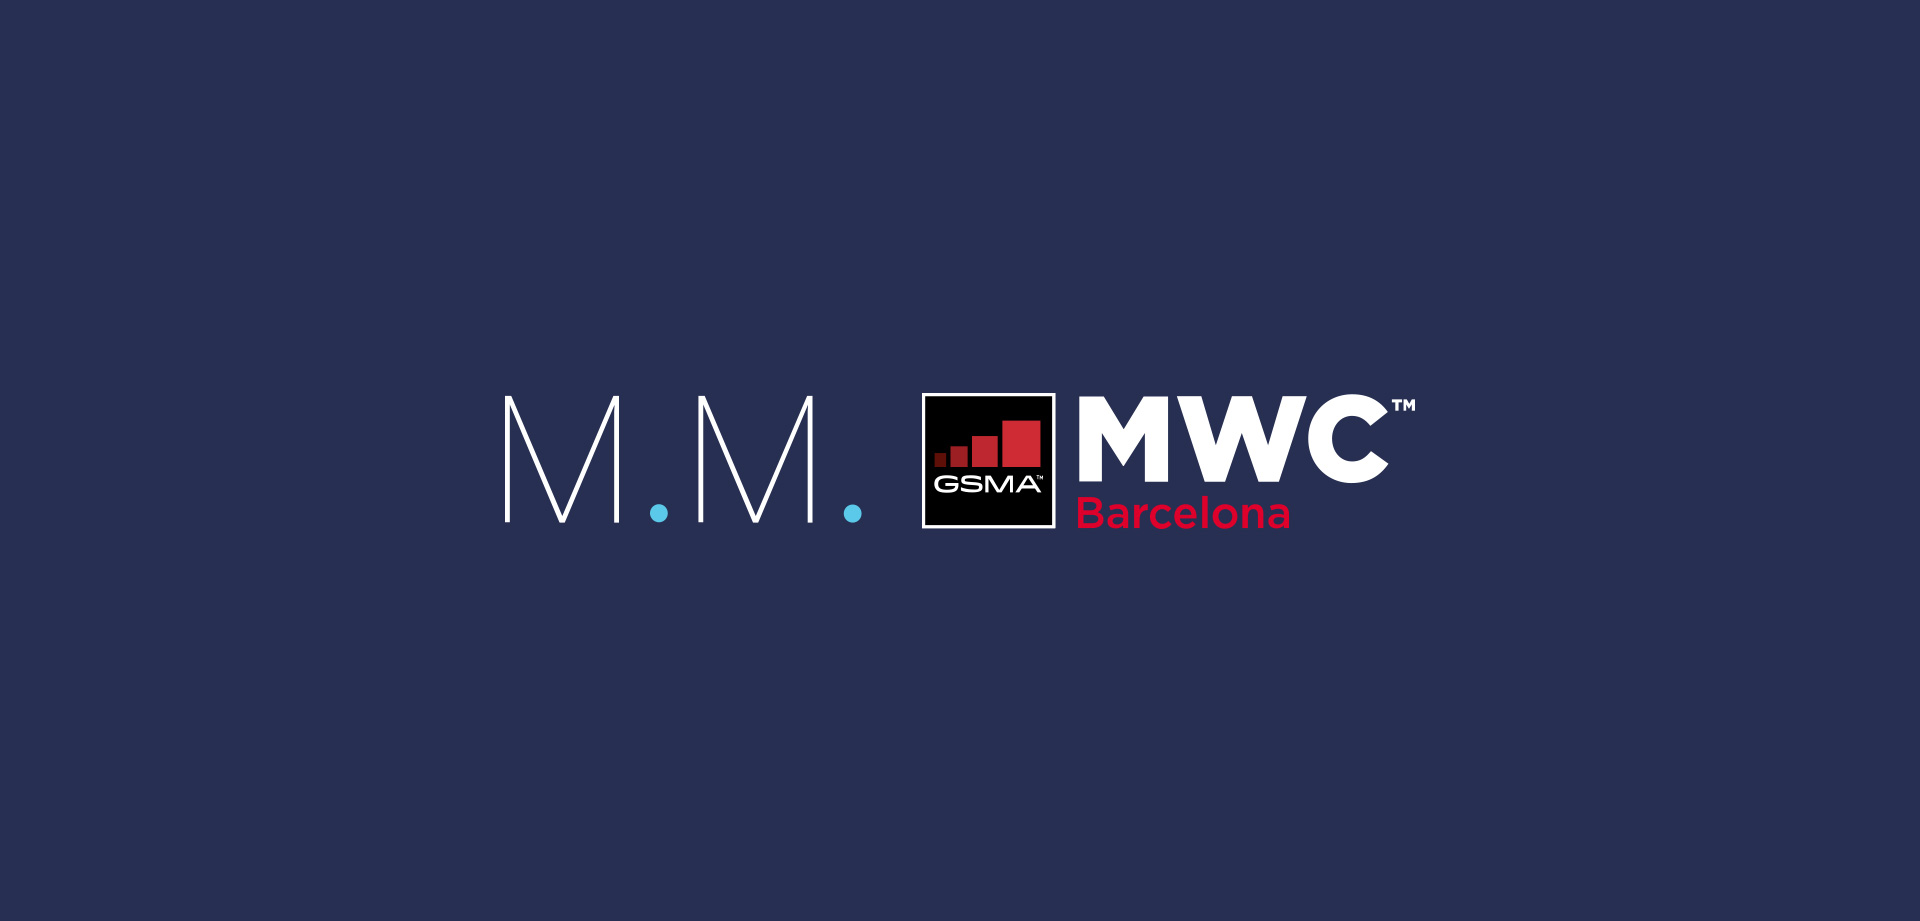 mm-mwc-21